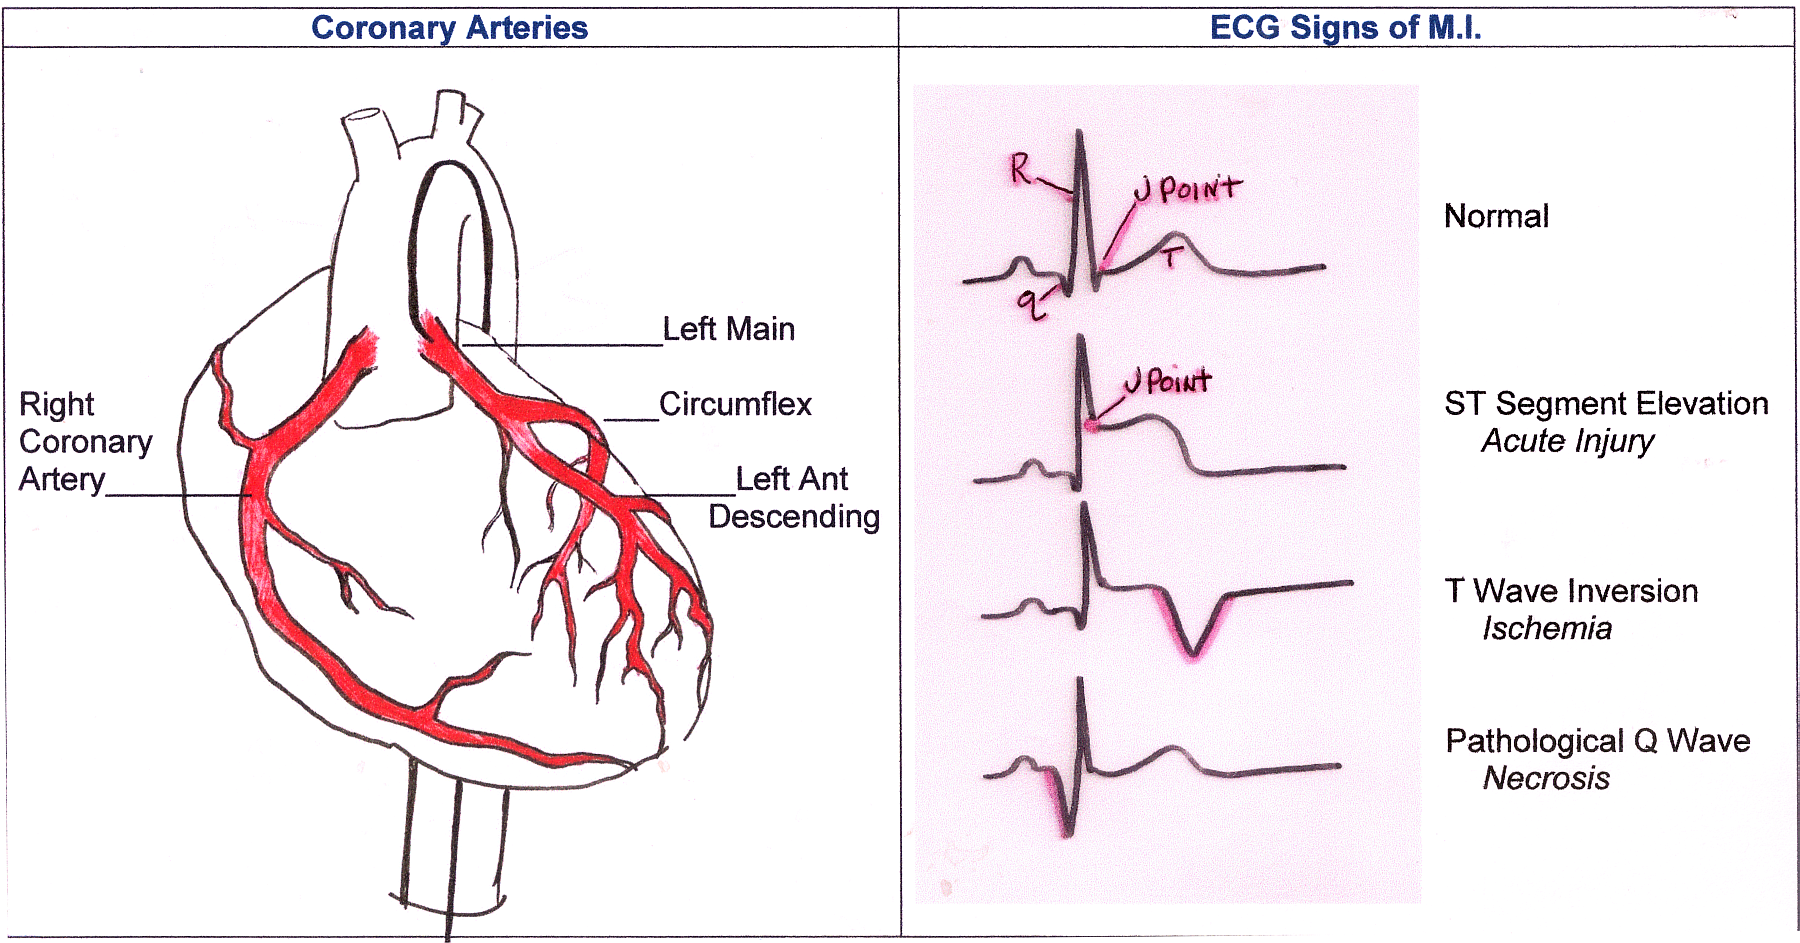 Coronary Arteries And Ecg Signs Of Mi. Hair Color Signs. Star Signs. Stroke Association Signs Of Stroke. Generalized Anxiety Disorder Signs Of Stroke. Common Cause Signs. Hieroglyphics Signs Of Stroke. Cloudy Urine Signs. Zodiac Sign Date Signs